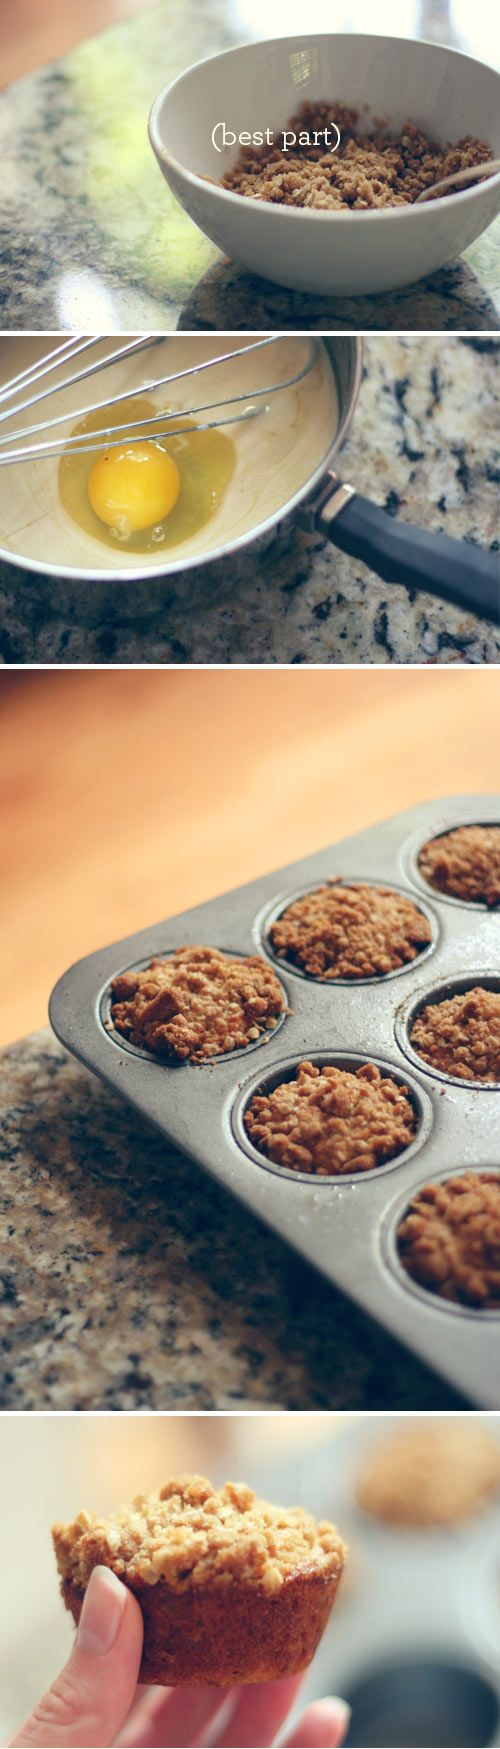 Oatmeal muffins recipe from Wit & Whistle. #oatmeal #muffin #witandwhistle